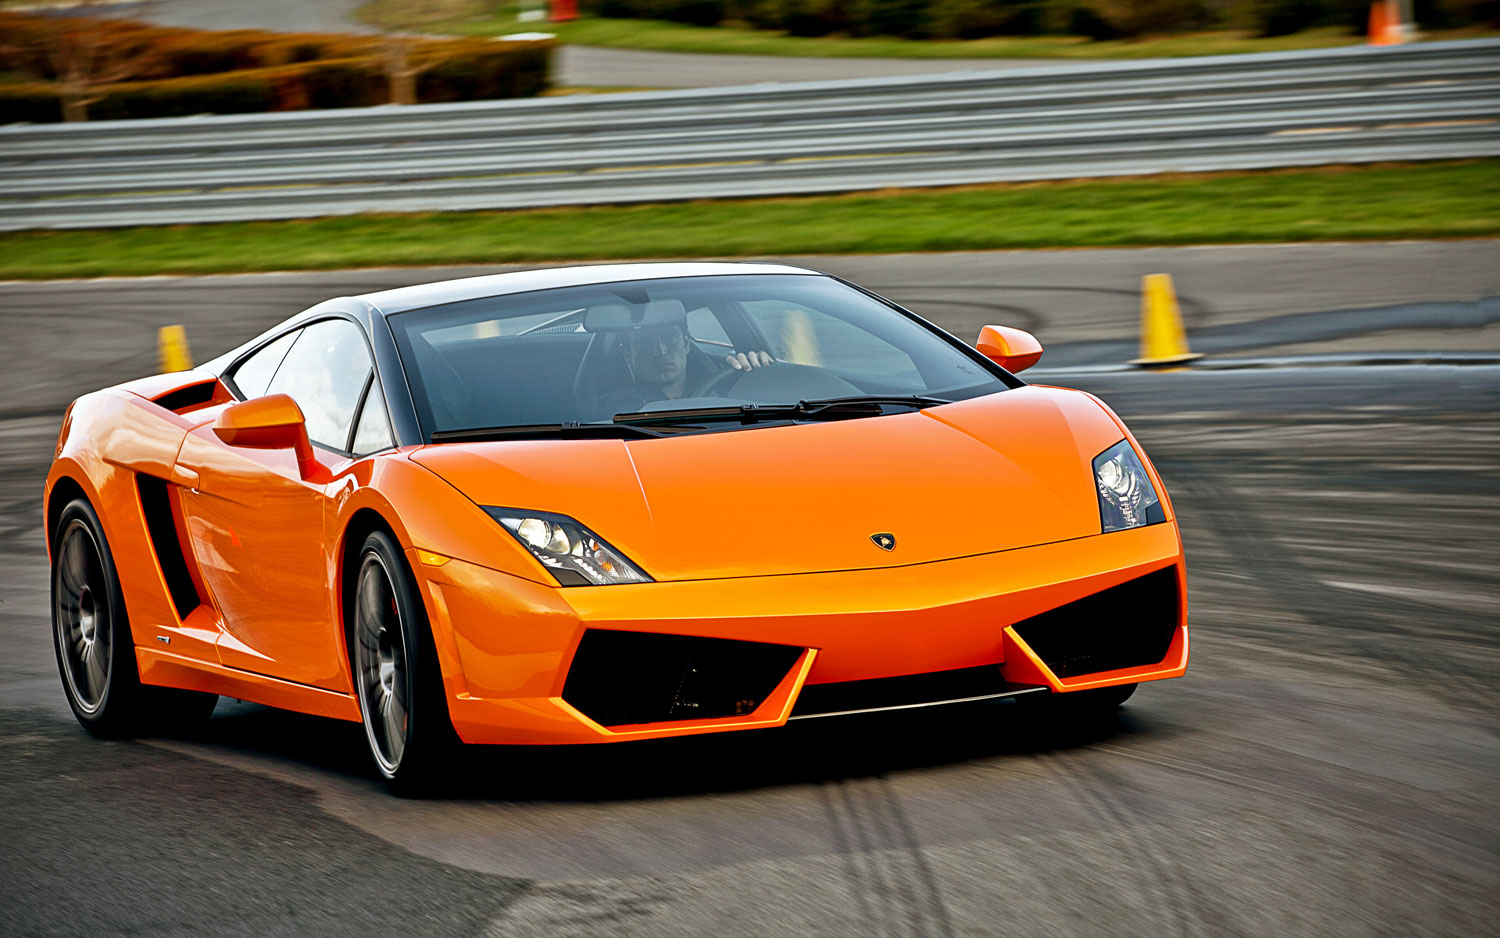 Lamborghini Gallardo Lp550 Bicolore Front Right View3